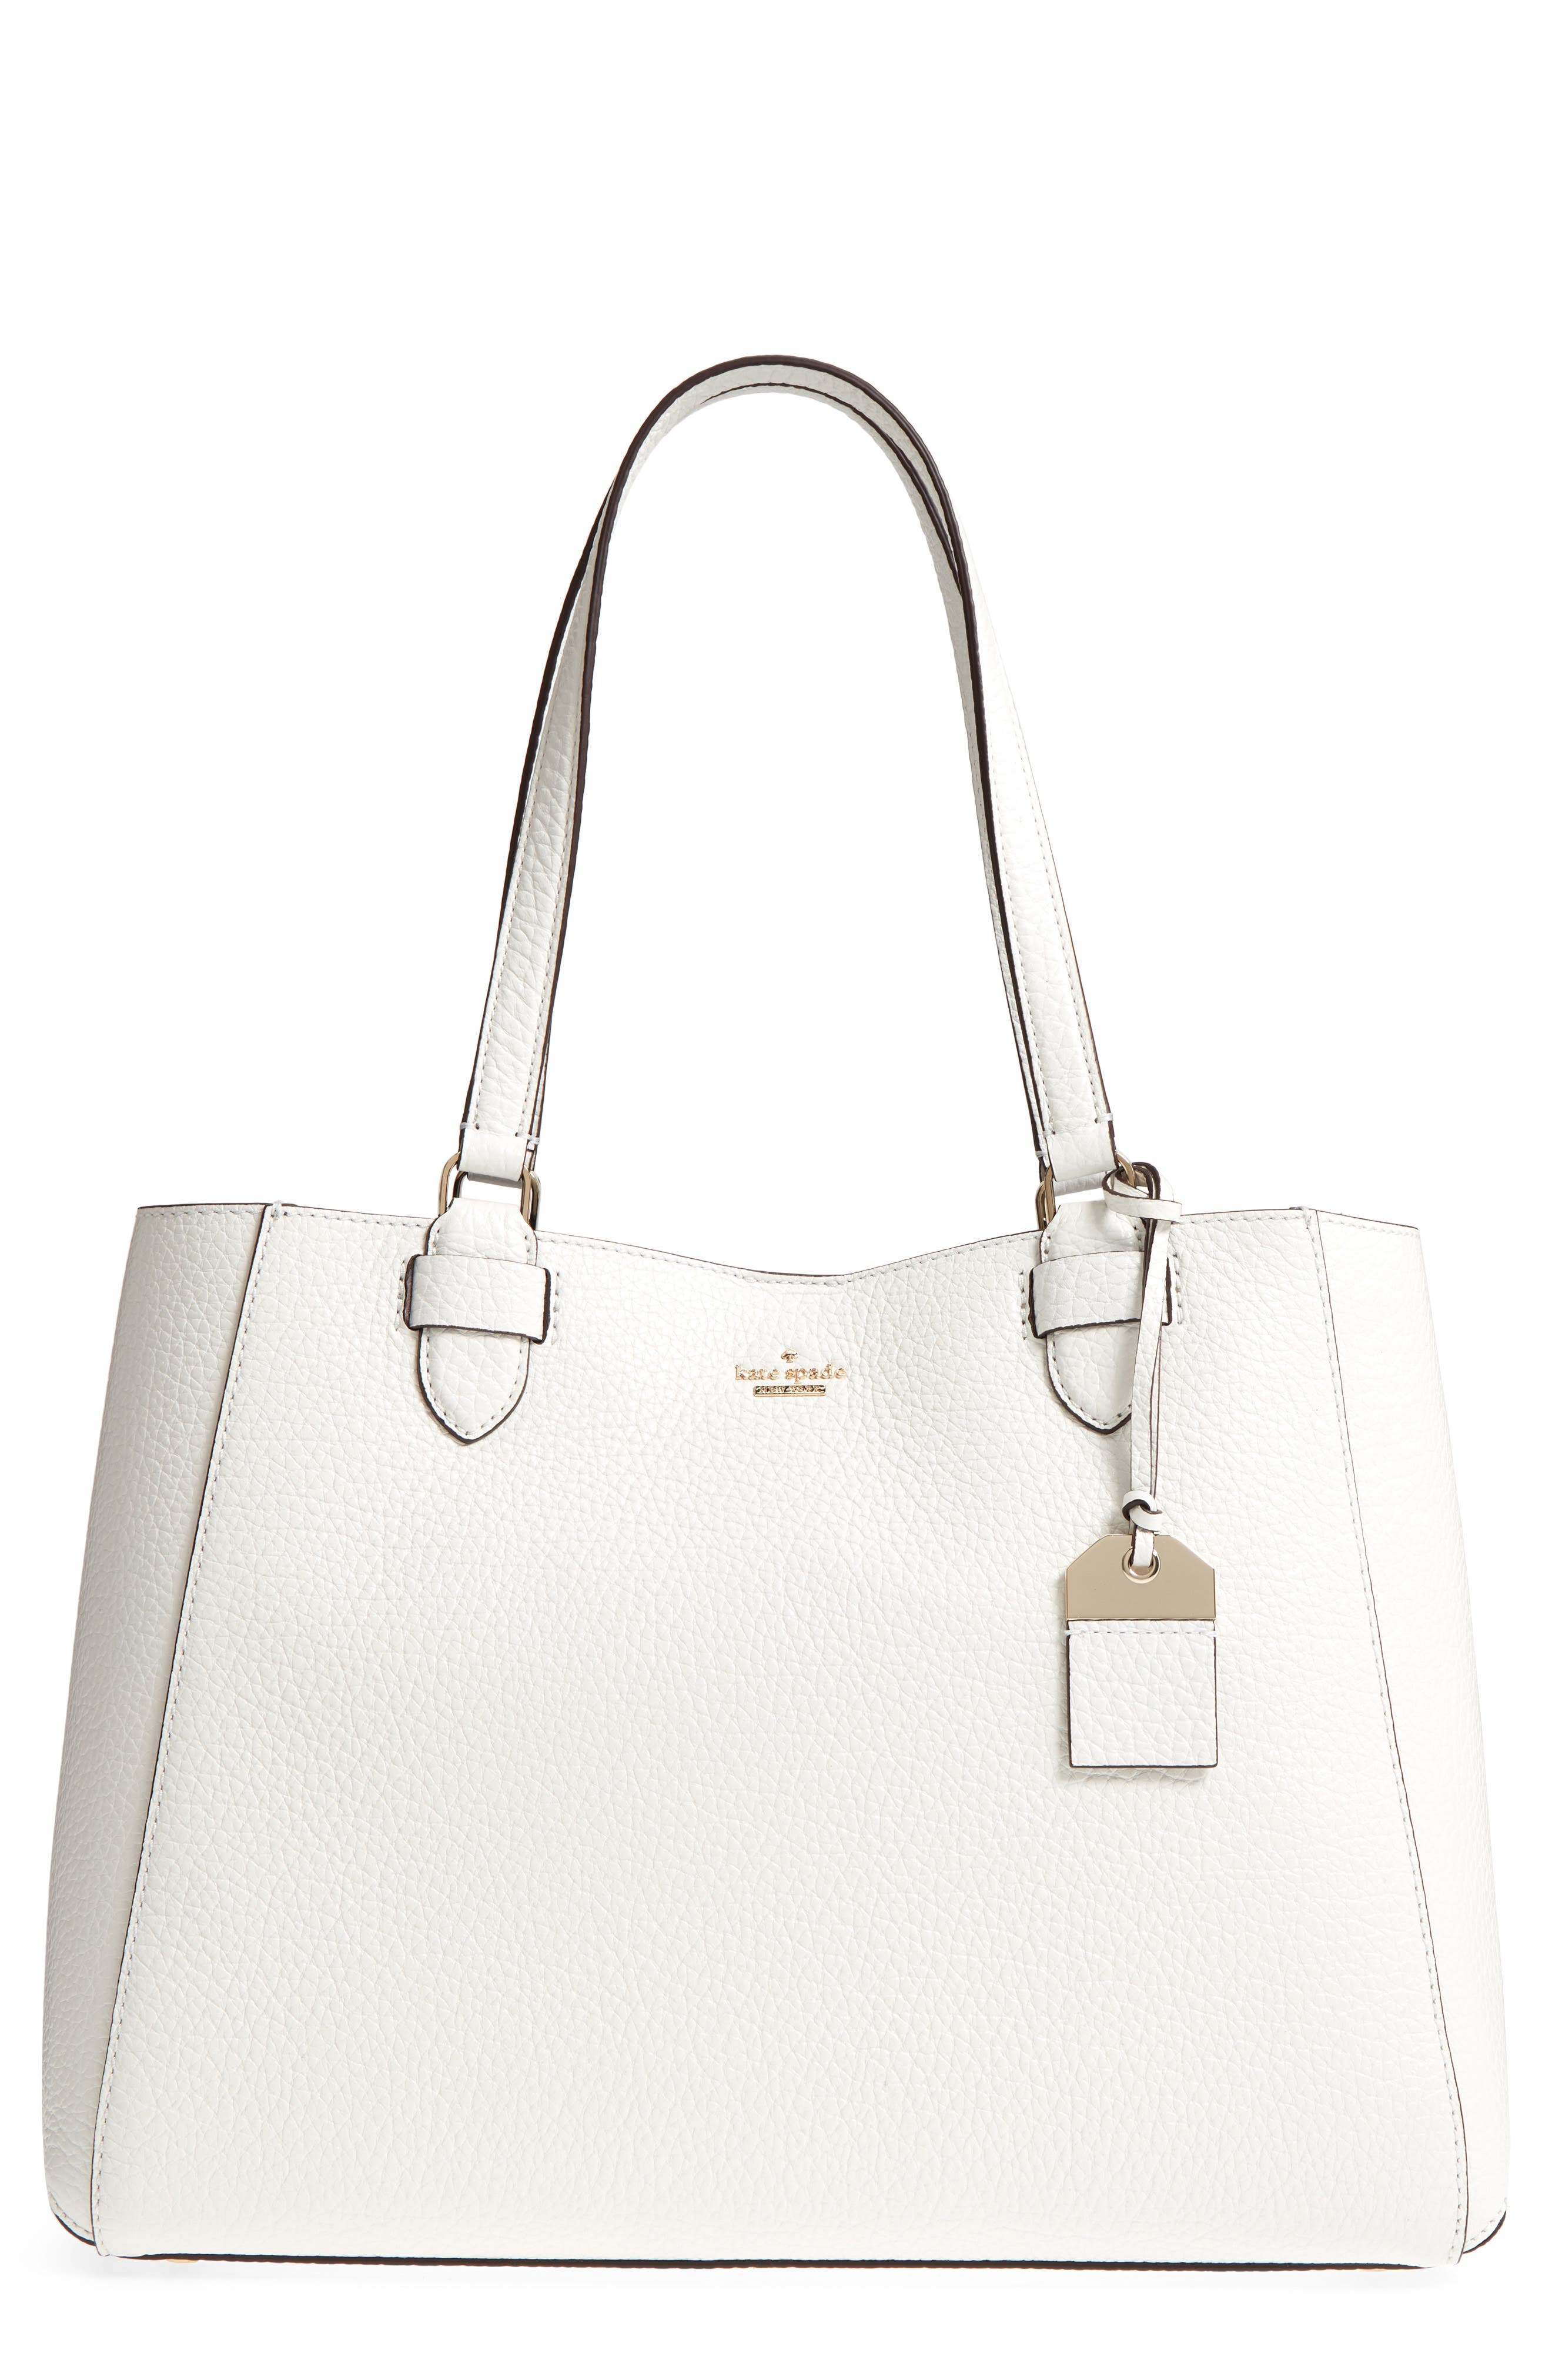 carter street - tyler leather tote,                         Main,                         color, 100